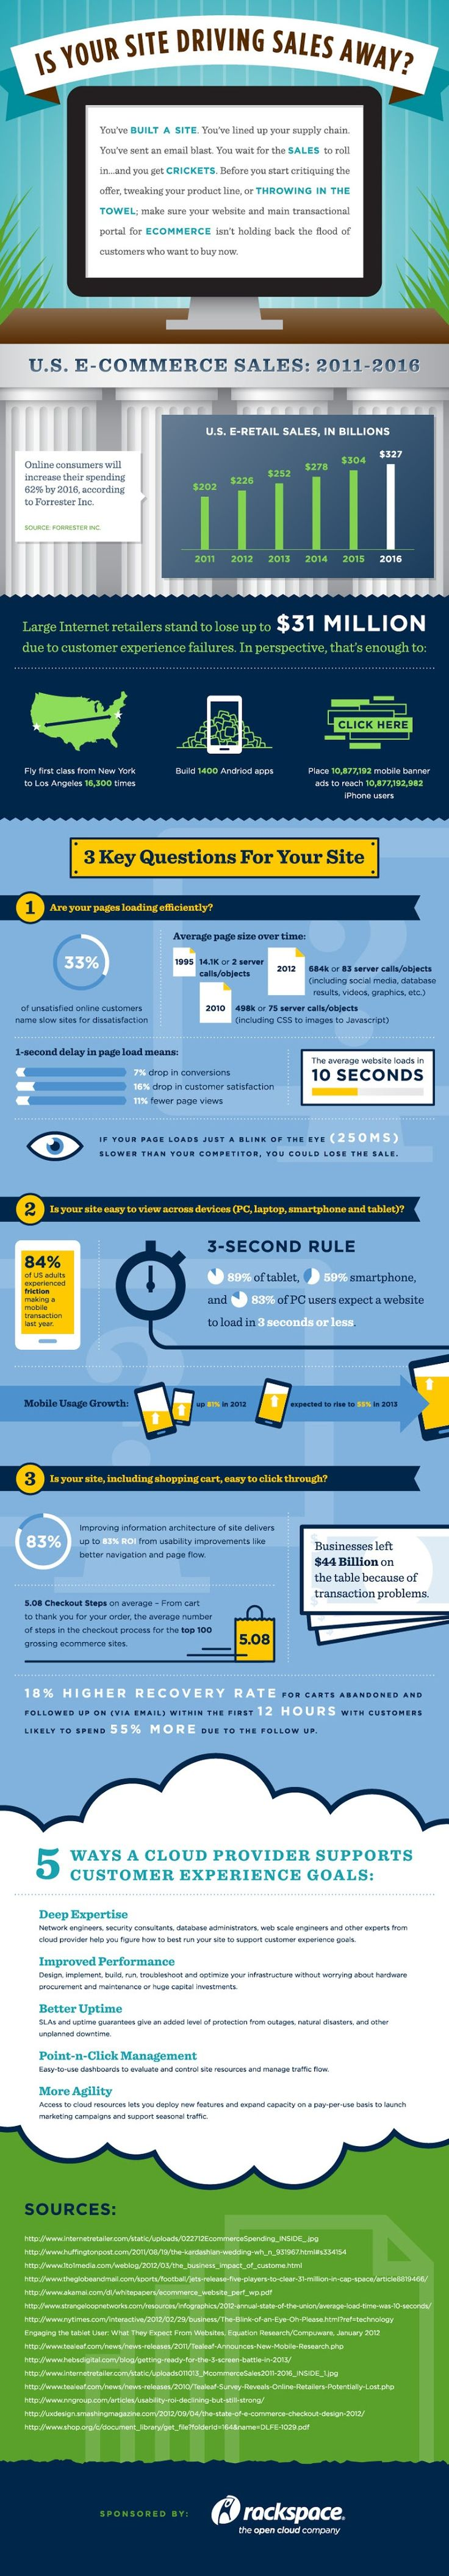 Digital-Marketing-Is-Your-Site-Driving-Sales-Away-infographic-Sales-Ecommerce-business Digital Marketing : Is Your Site Driving Sales Away?   #infographic #Sales #Ecommerce #business